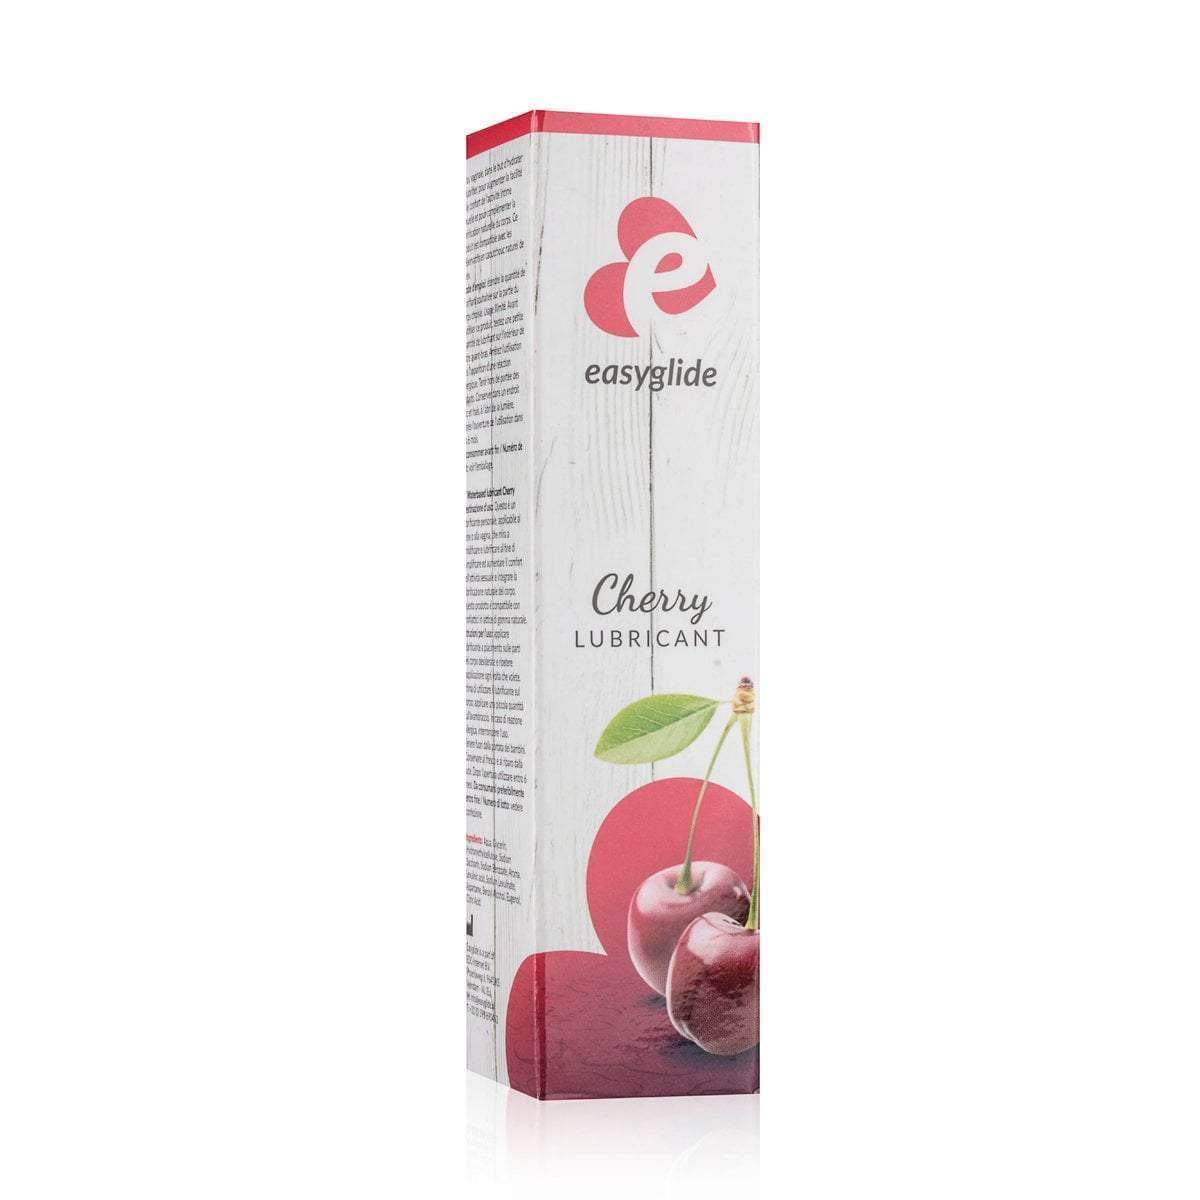 EasyGlide Flavoured Lubricant EasyGlide Cherry Waterbased Lubricant - 30ml